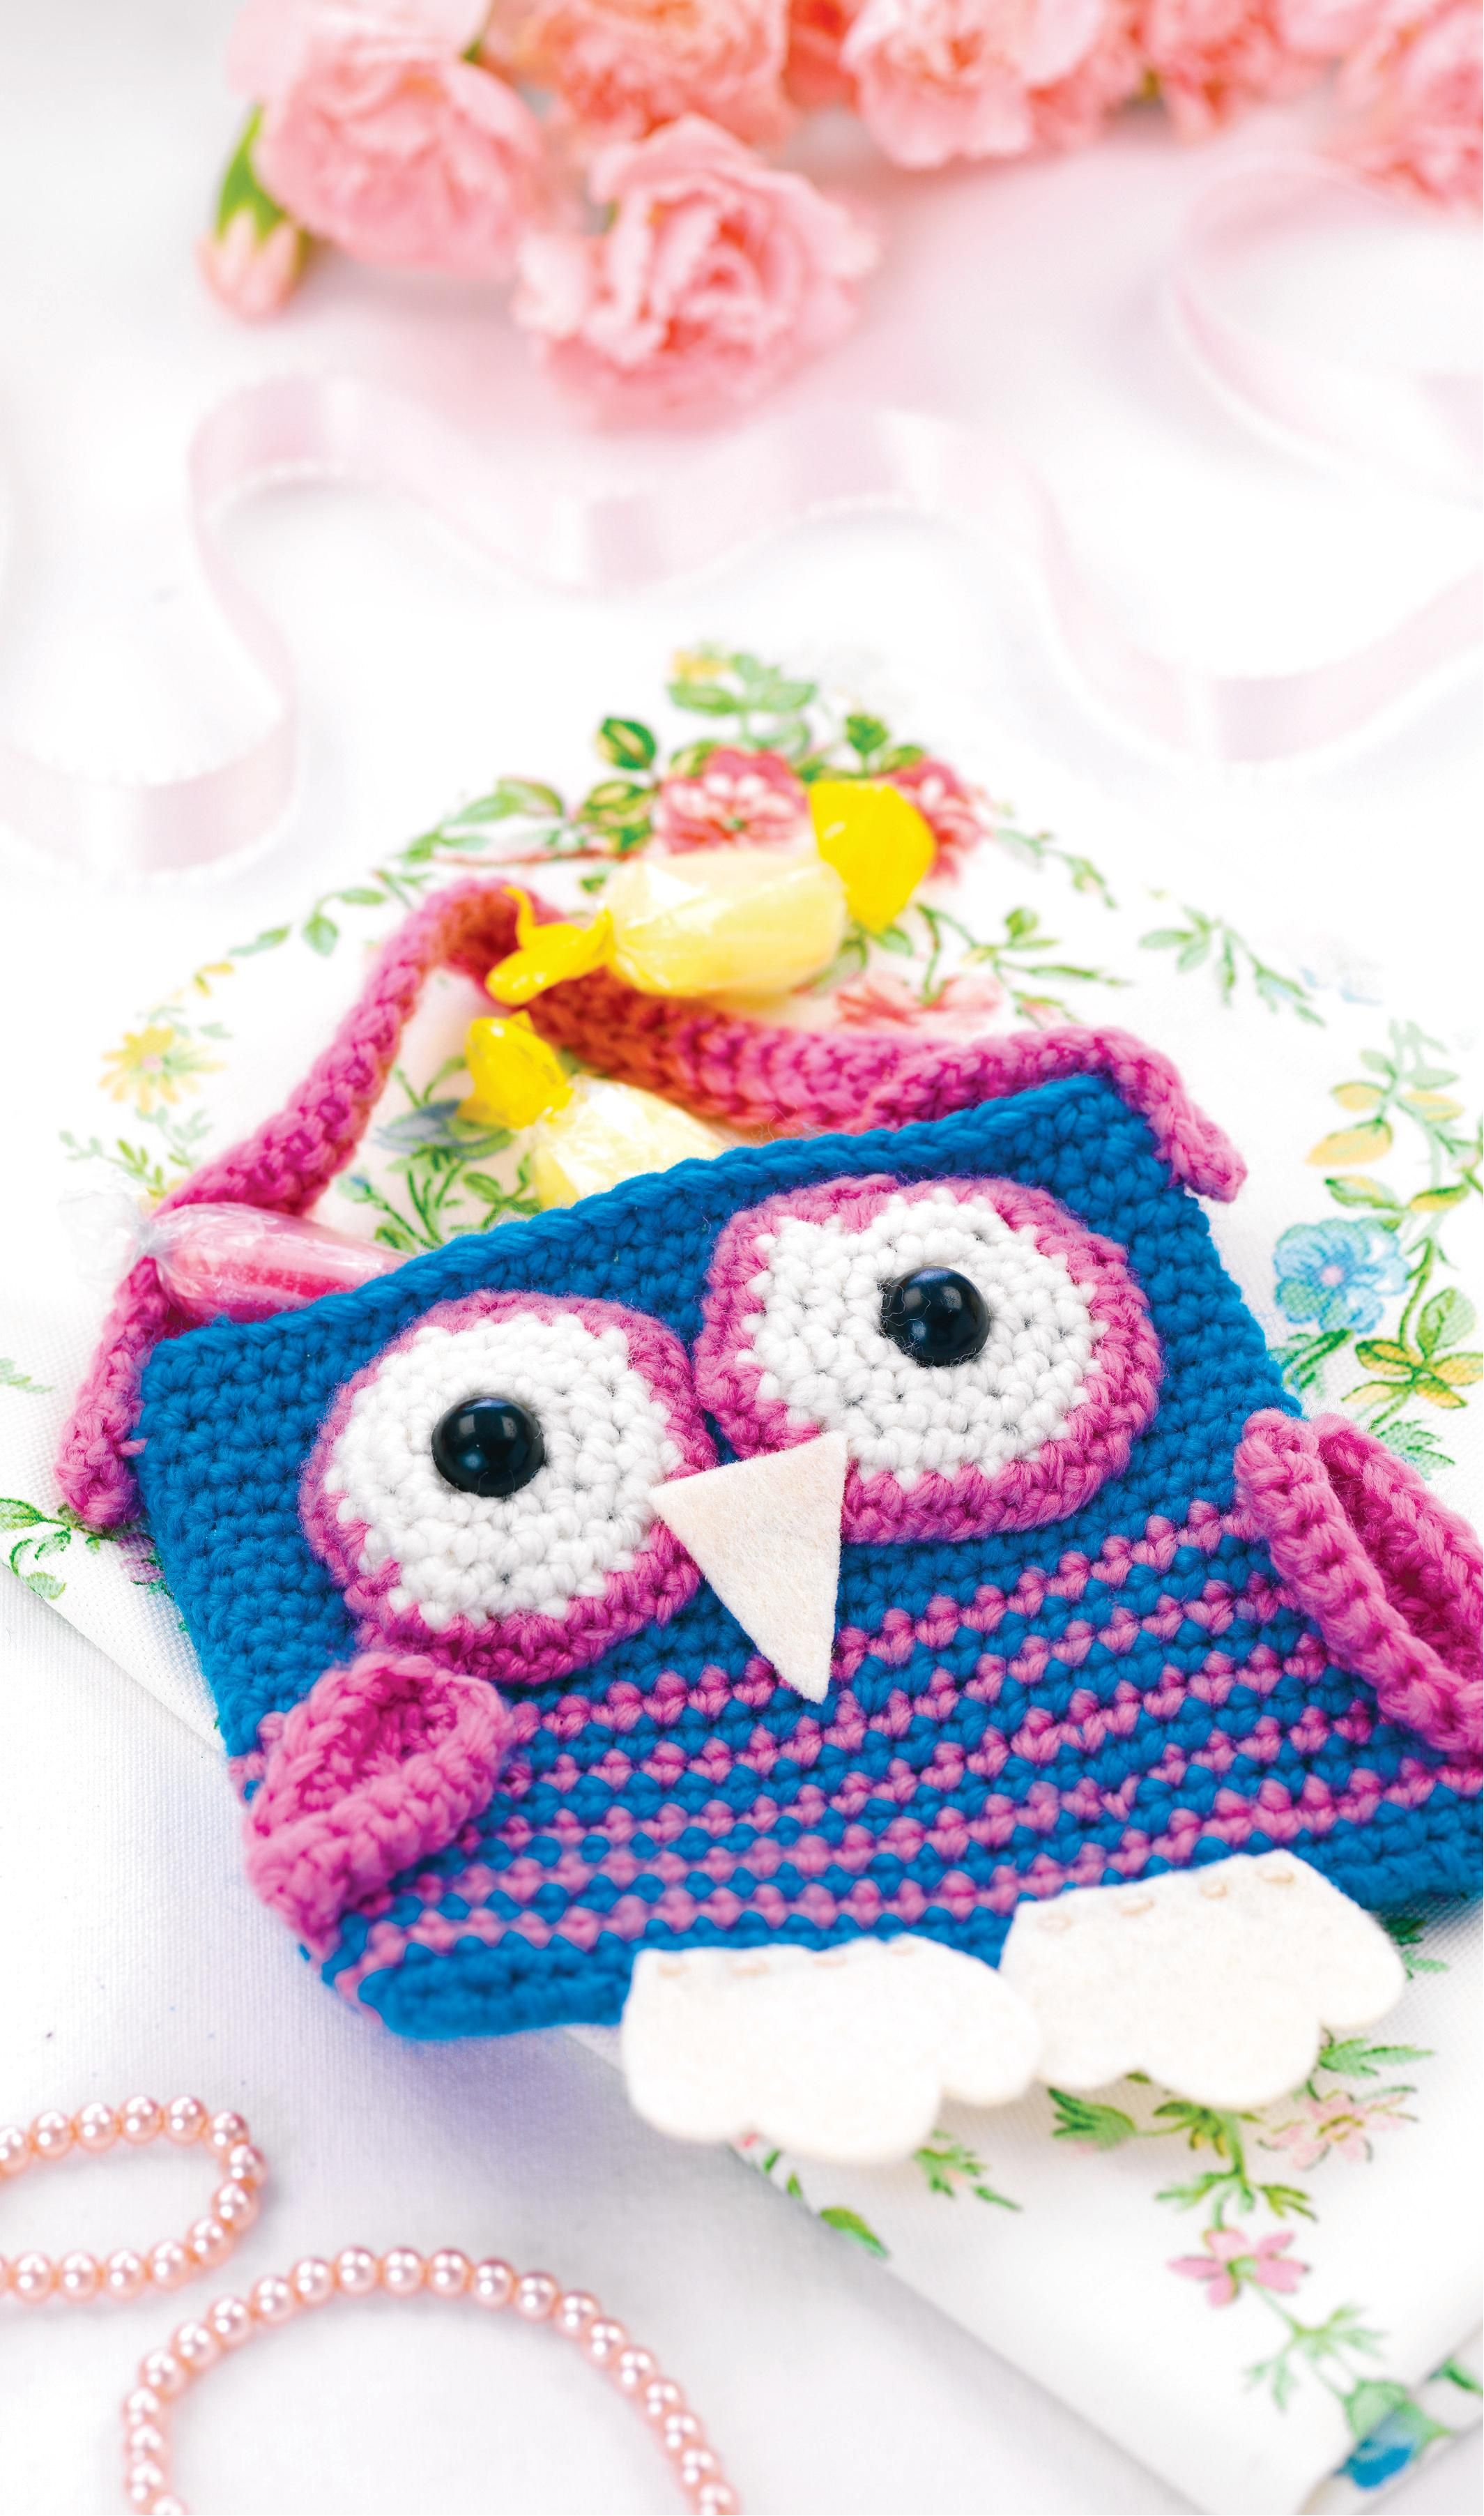 Simple crochet owl bag crochet pattern ruth mills pinterest simple crochet owl bag crochet pattern bankloansurffo Image collections